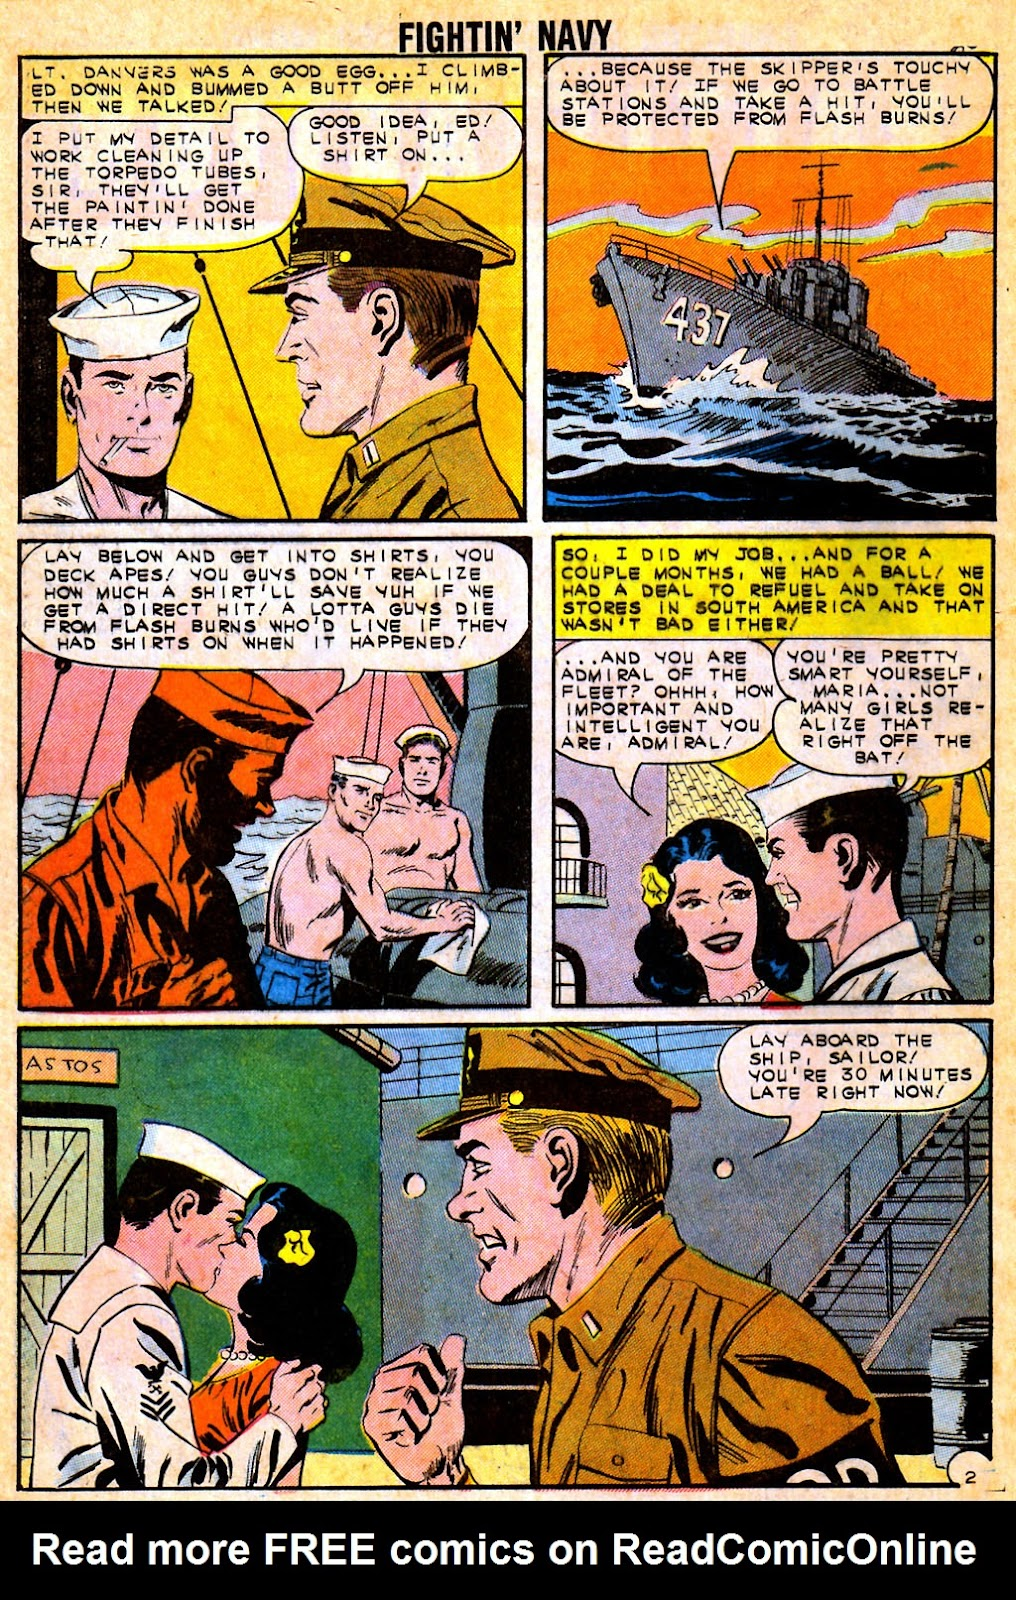 Read online Fightin' Navy comic -  Issue #111 - 28